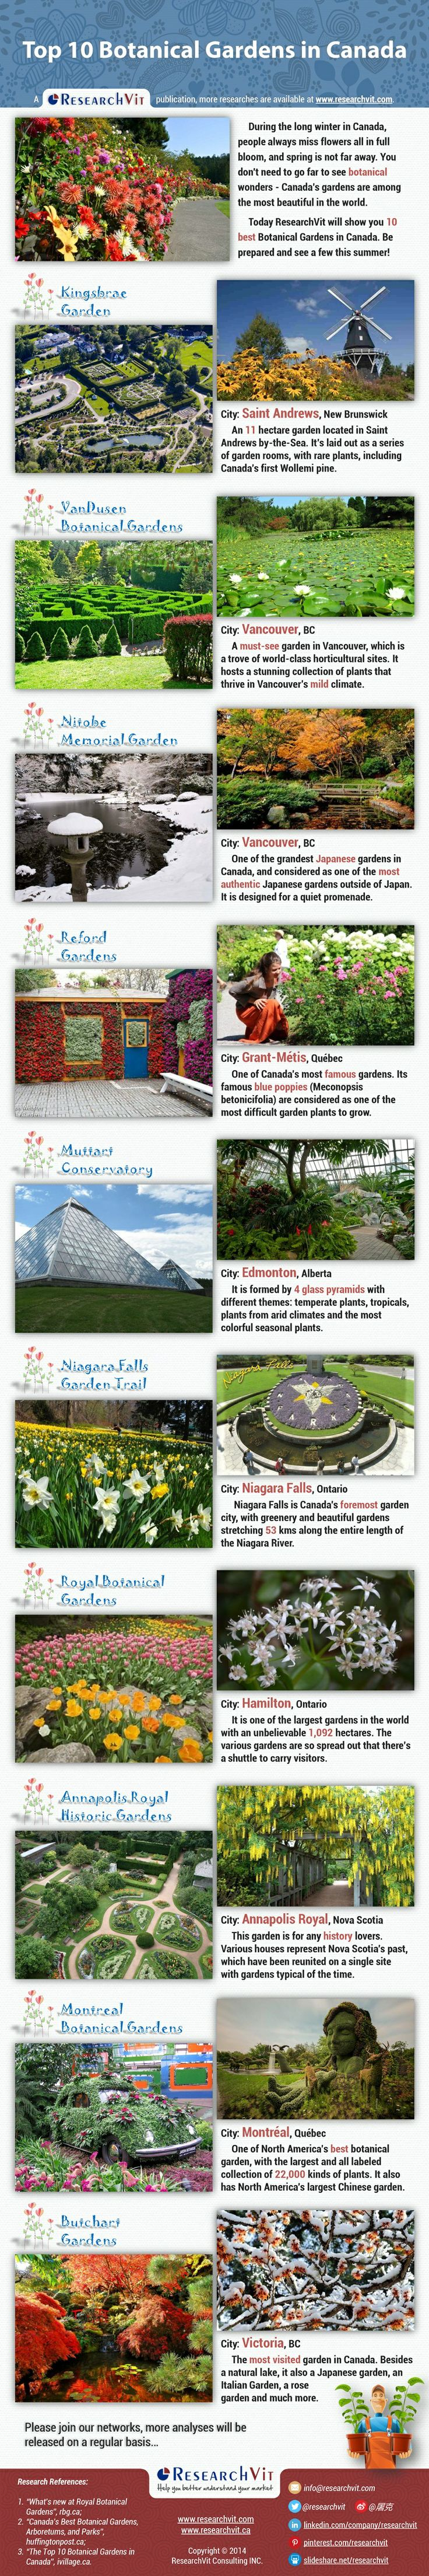 Top 10 Botanical Gardens in Canada: During the long winter in Canada, people always miss flowers all in full bloom, and spring is not far away. You don't need to go far to see botanical wonders - Canada's gardens are among the most beautiful in the world. Today ResearchVit will show you 10 best Botanical Gardens in Canada. Be prepared and see a few this summer!